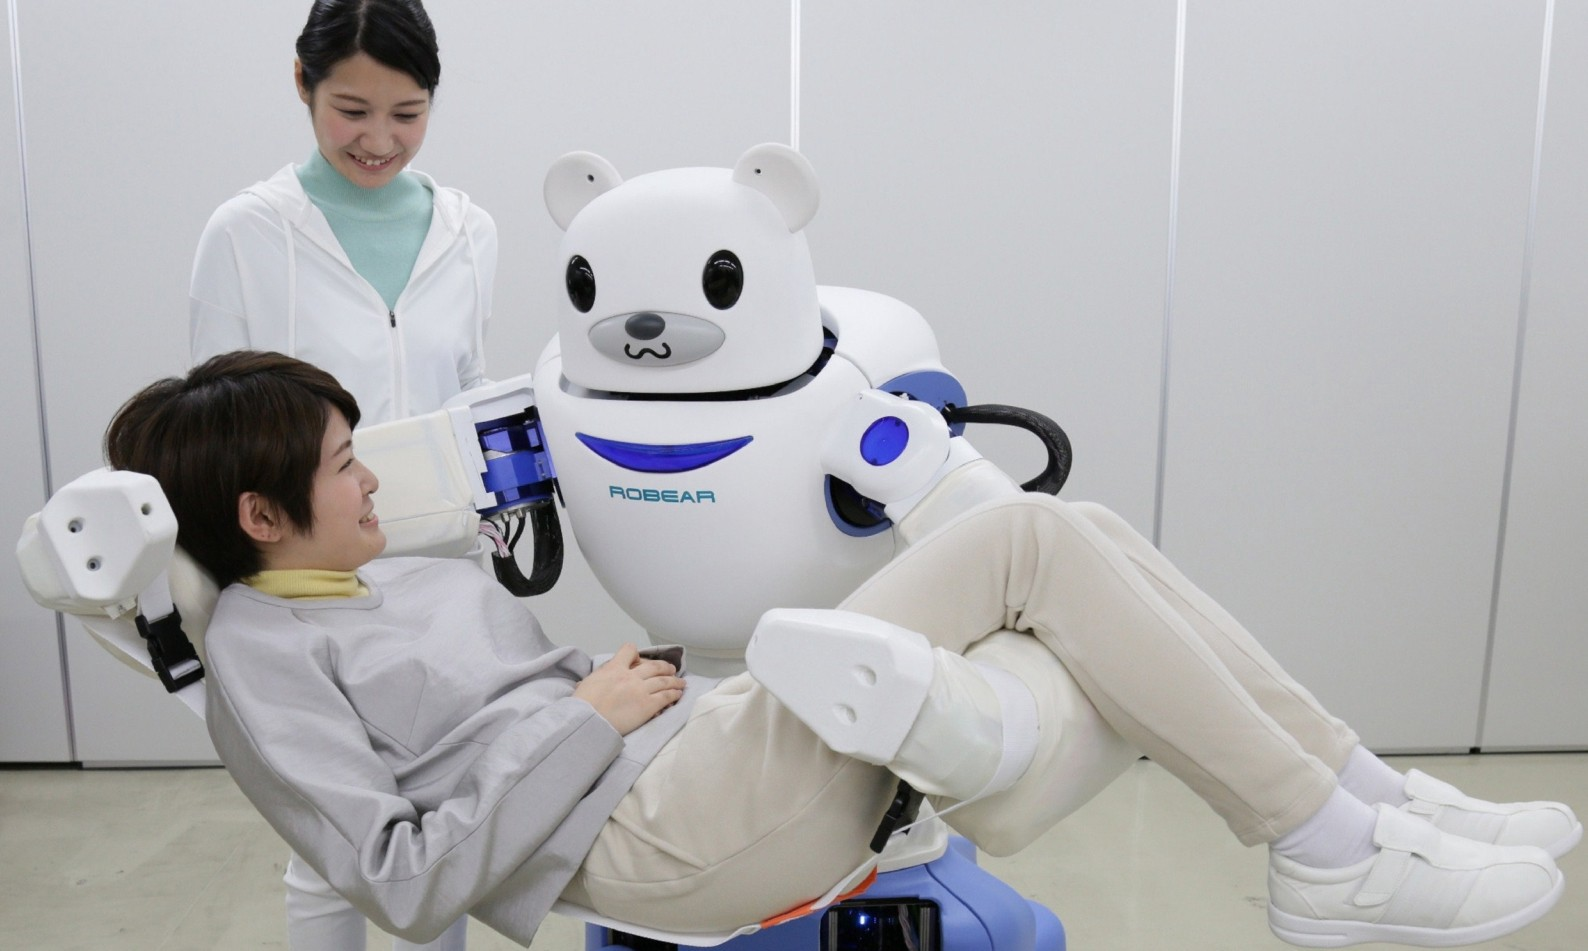 The bear face on the robot puts the patient instantly at ease.